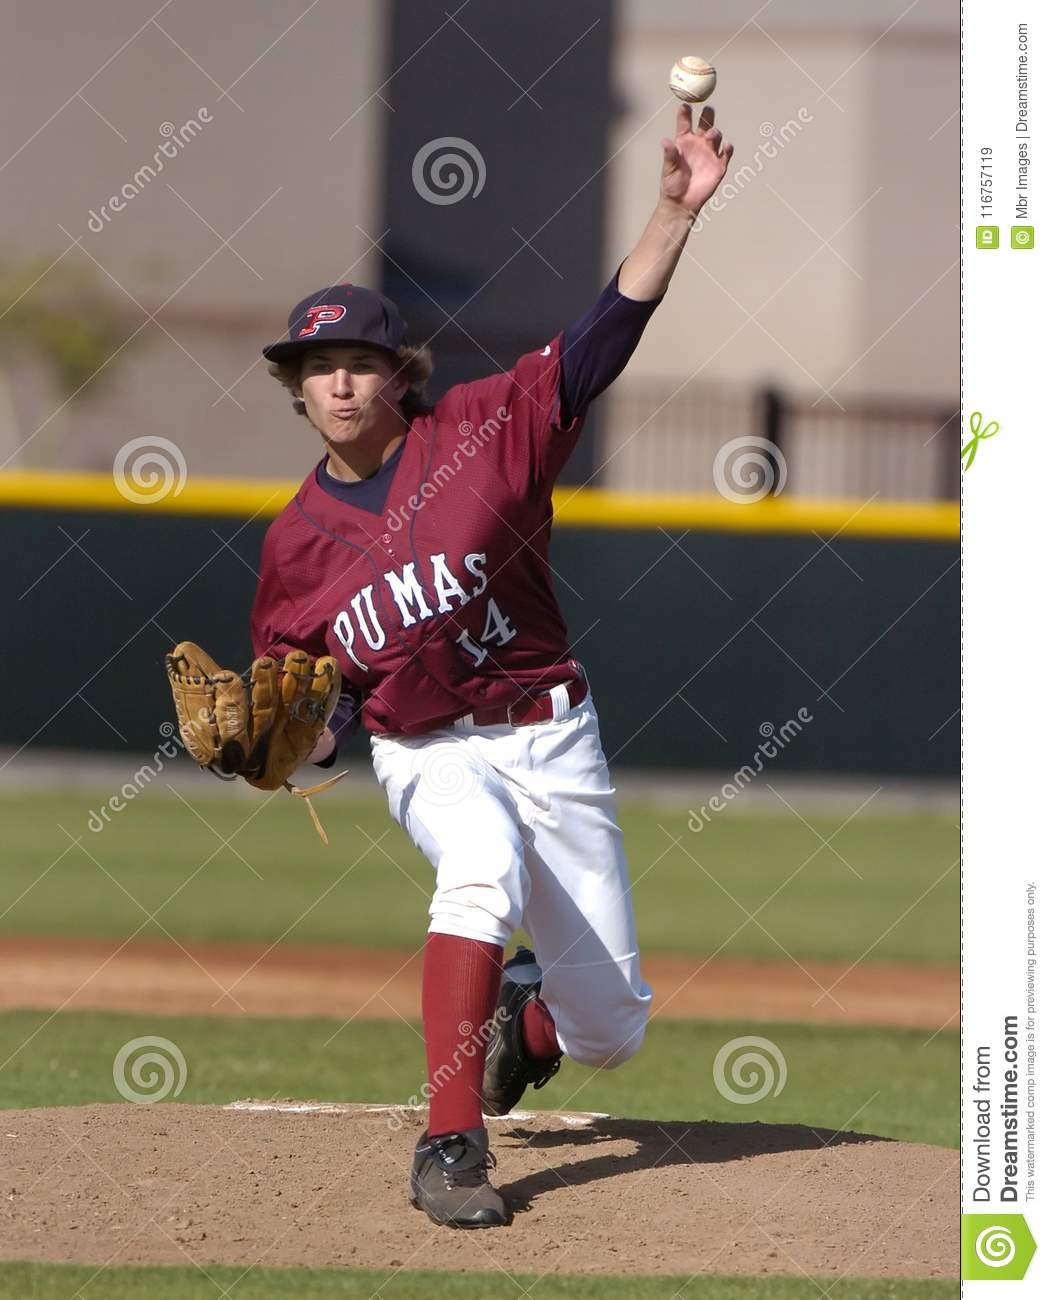 High School Baseball editorial stock image  Image of pitcher - 116757119